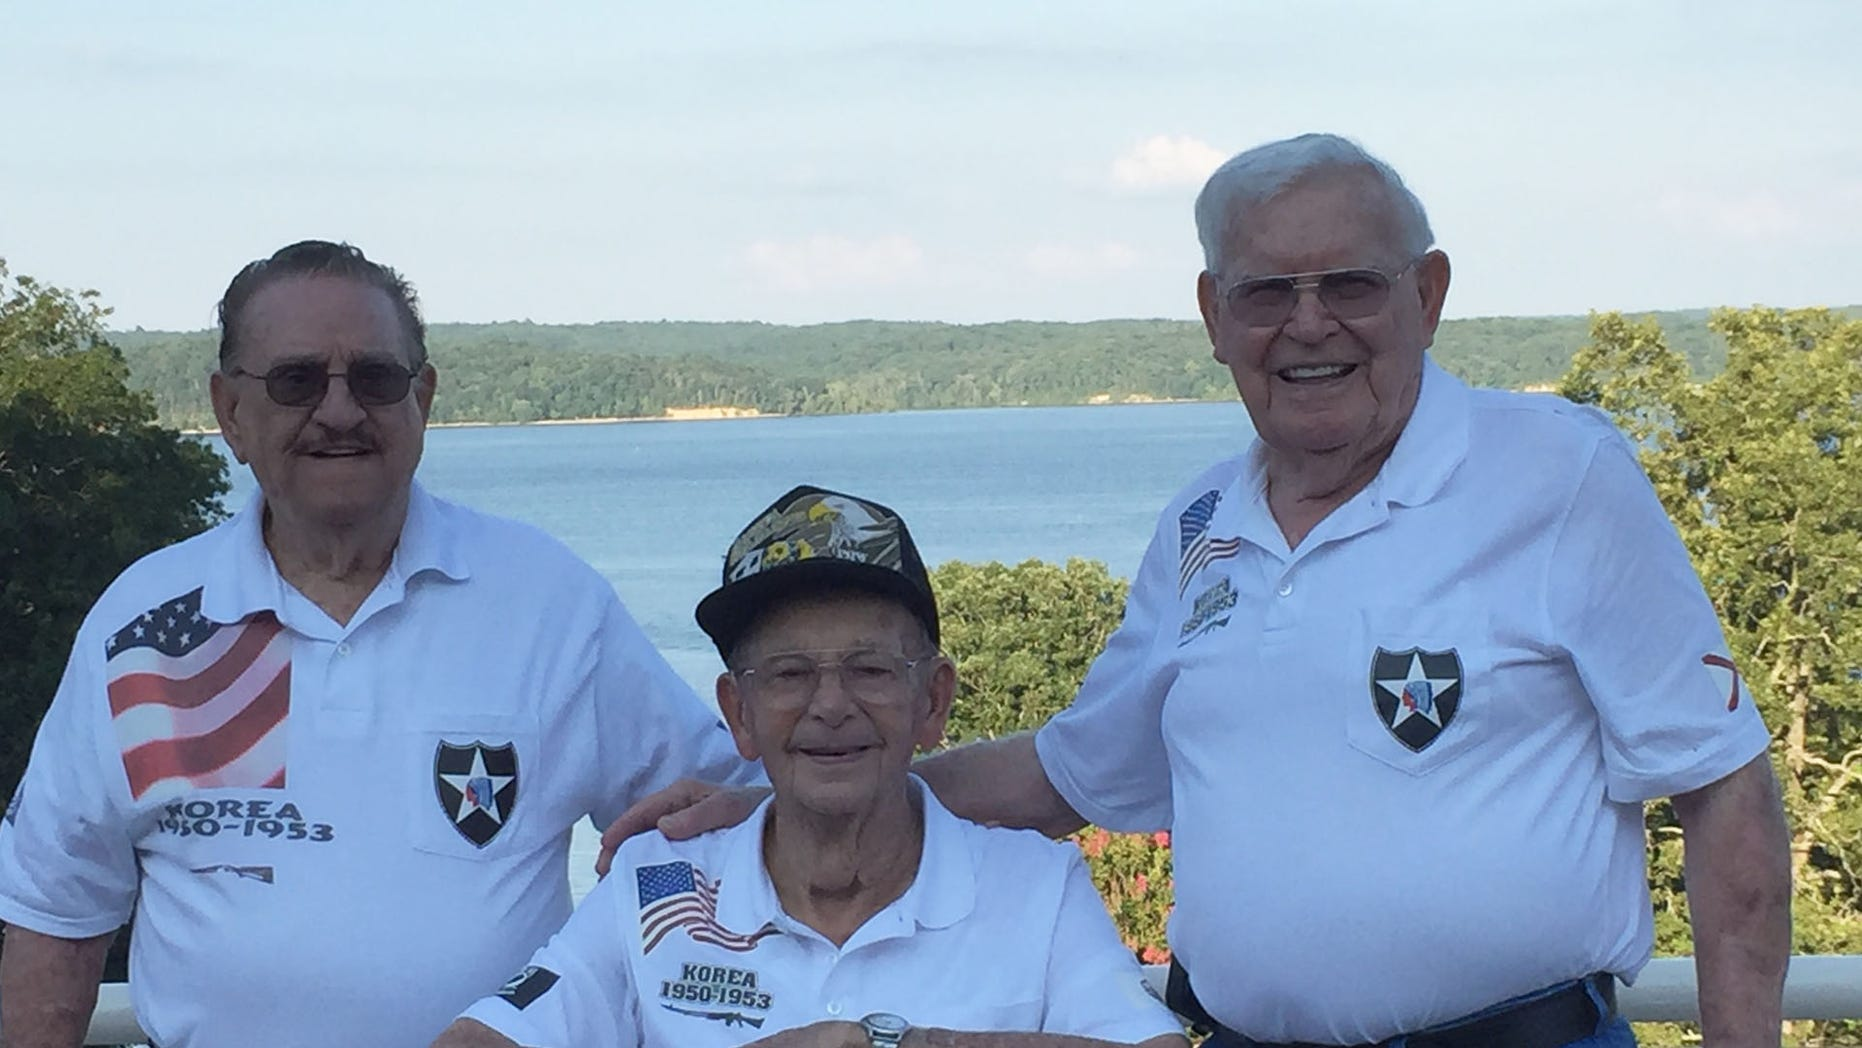 (L to R) Rafael Diaz, Les Robertson, and Newton Duke were held by the Chinese as prisoners of war during the Korean War. Last weekend they reunited for the 64th anniversary of their group.